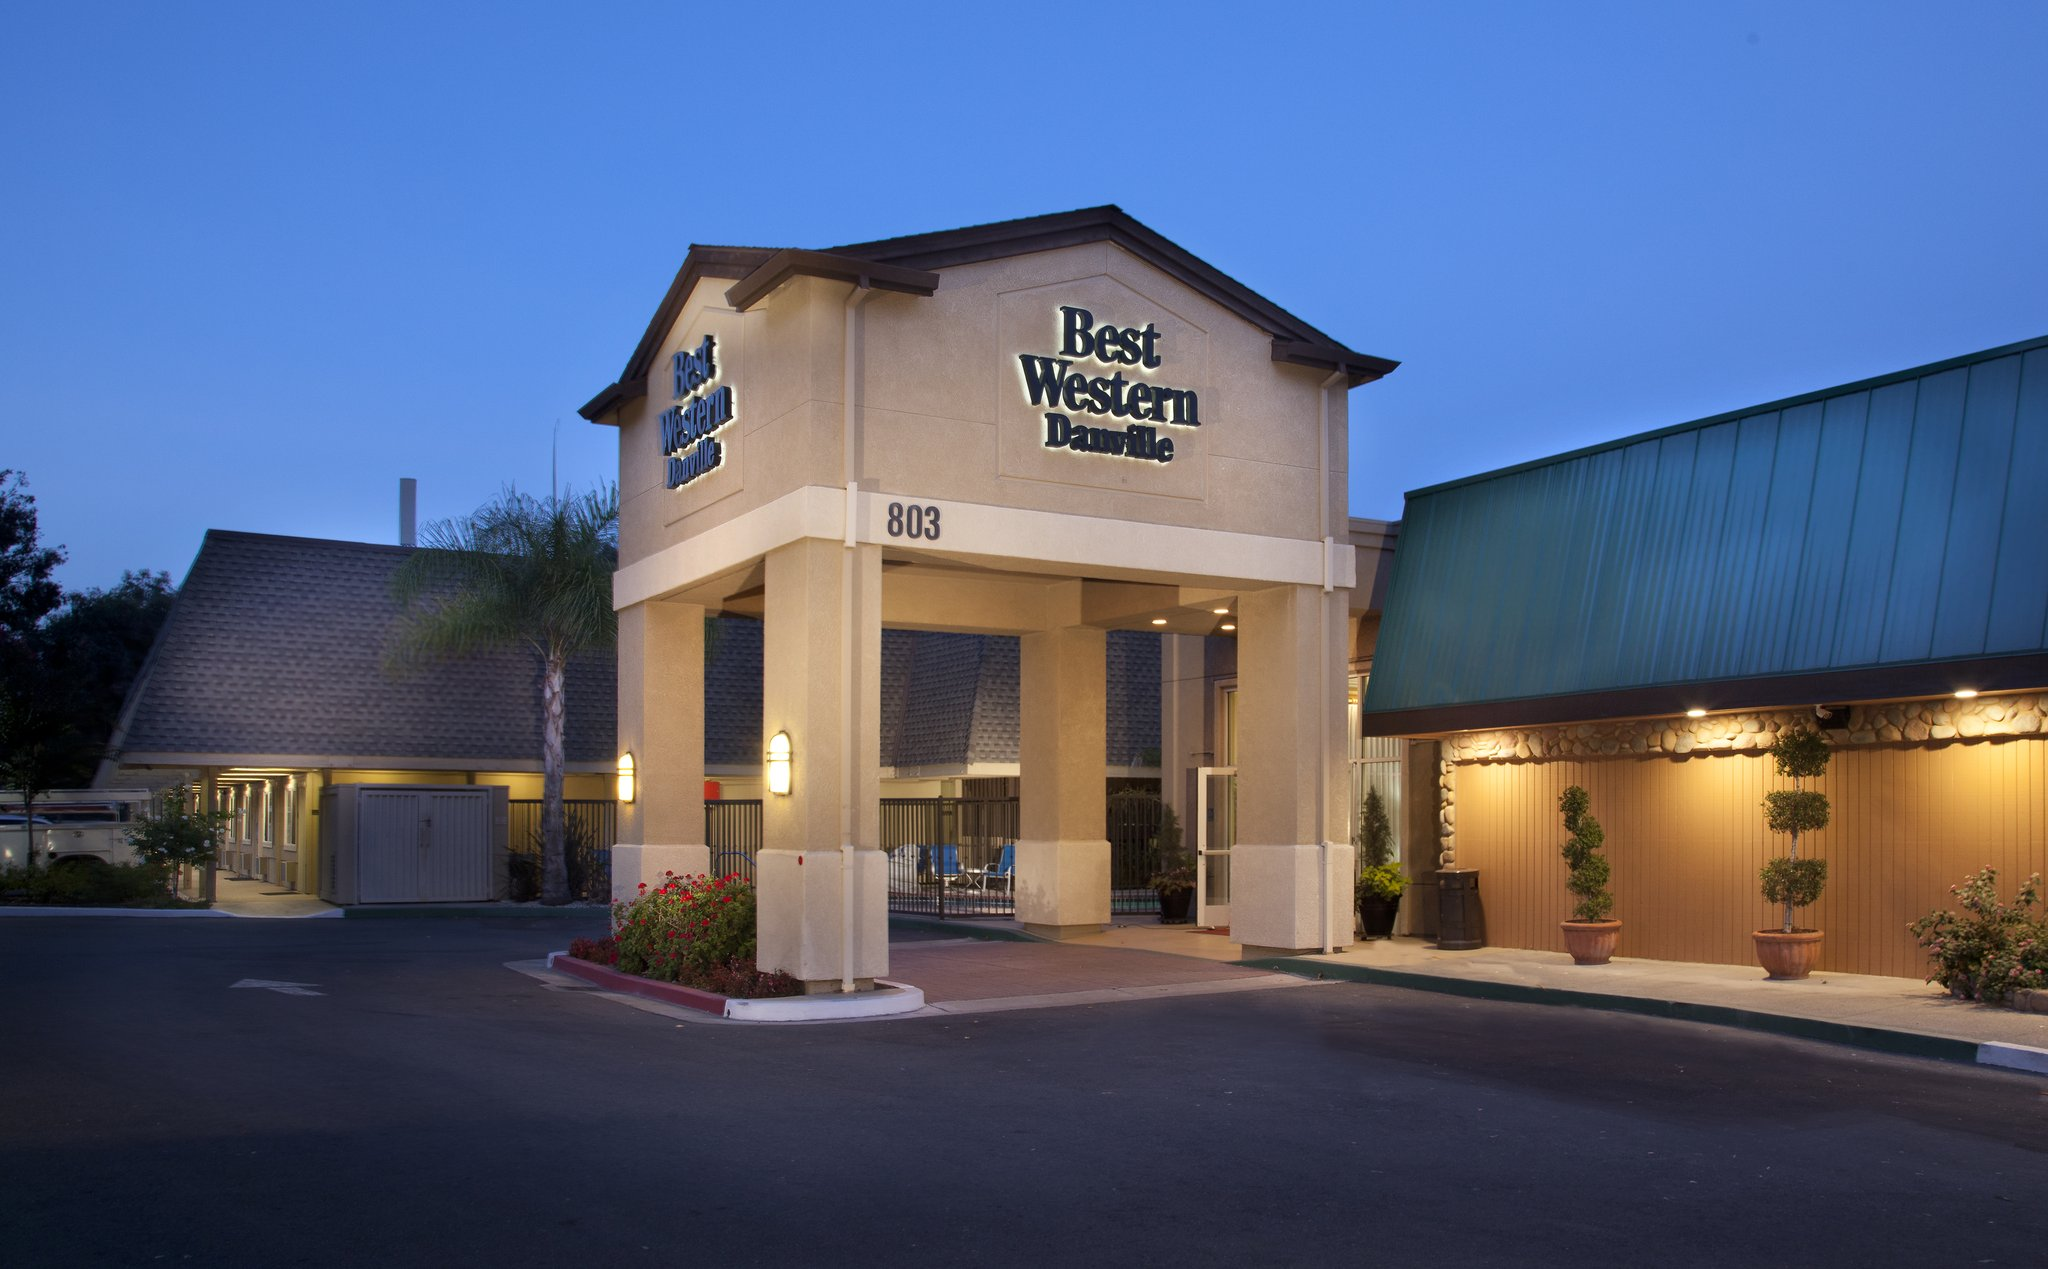 Hotel in Danville CA | Best Western Danville Sycamore Inn on best western directory, best western staff, best western menu, best western coupons, best western gift cards, best western rates, best western types, best western reservations, best western history, best western brands, best western technology, best western headquarters, best western commercial, best western floor plans, best western map, best western features, best western store, best western service, best western food, best western portfolio,